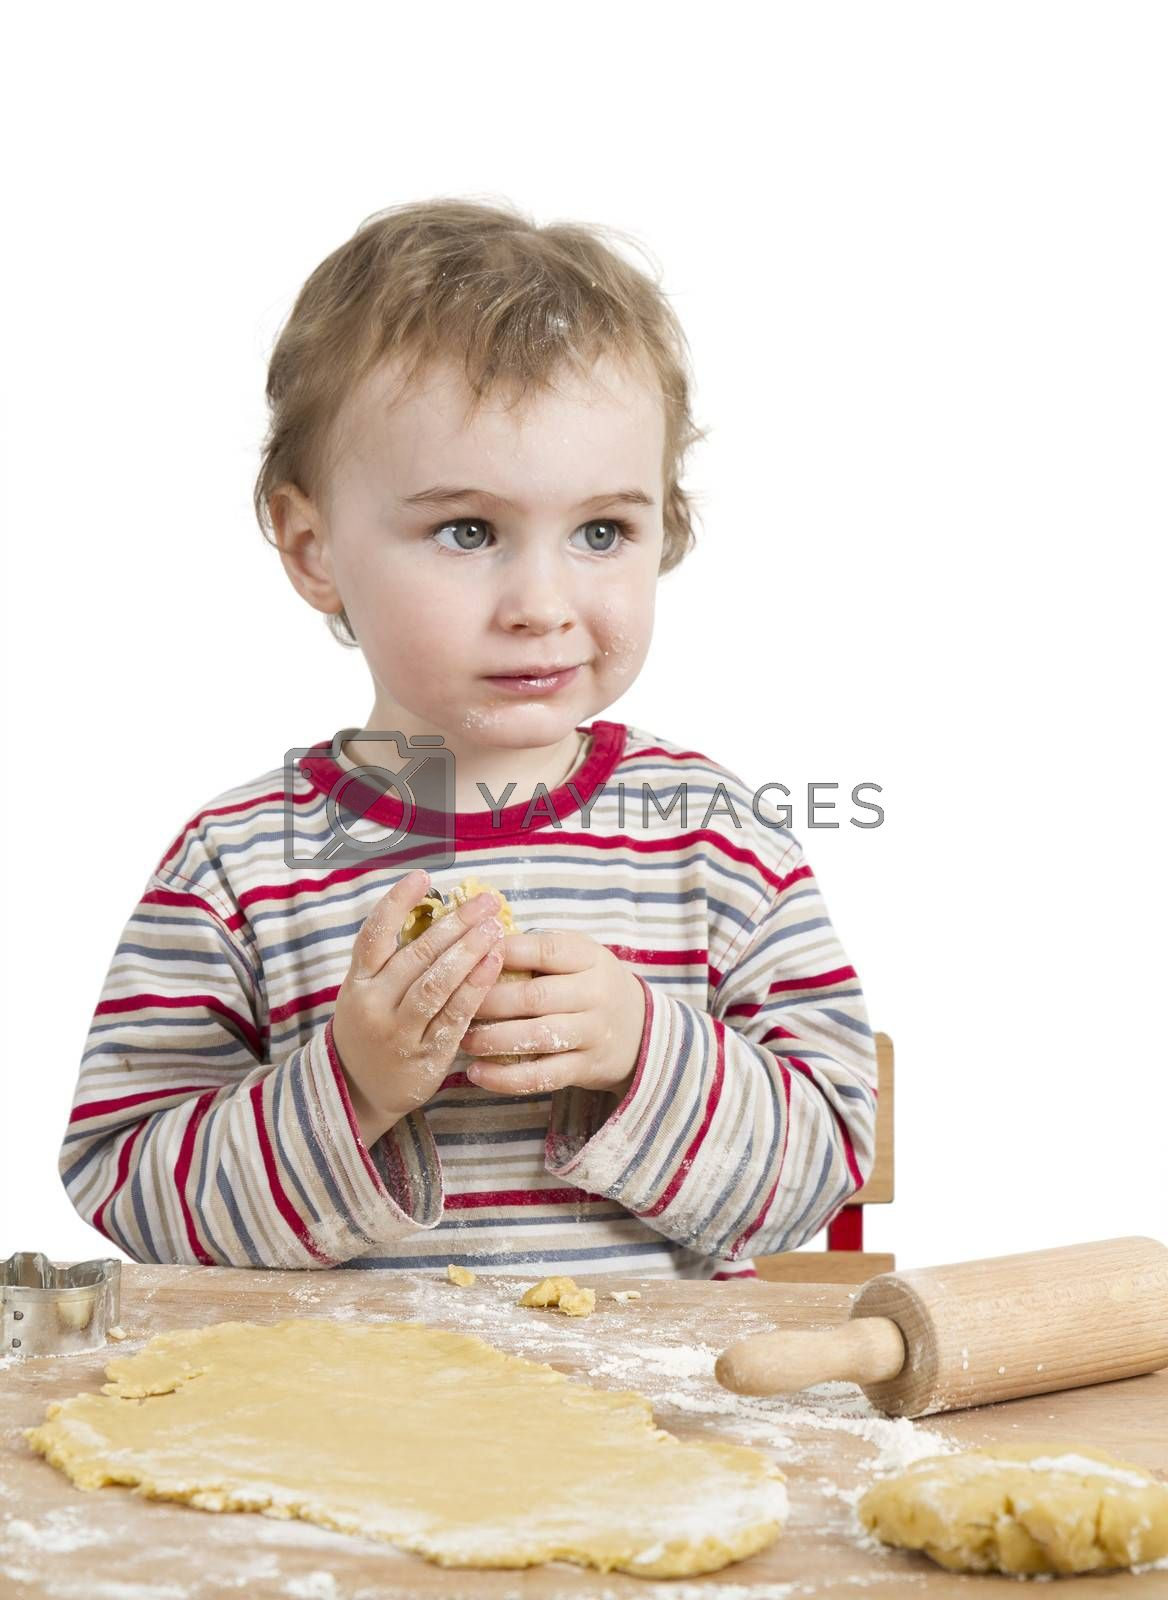 cute child with dough and rolling pin isolated on white background. horizontal image